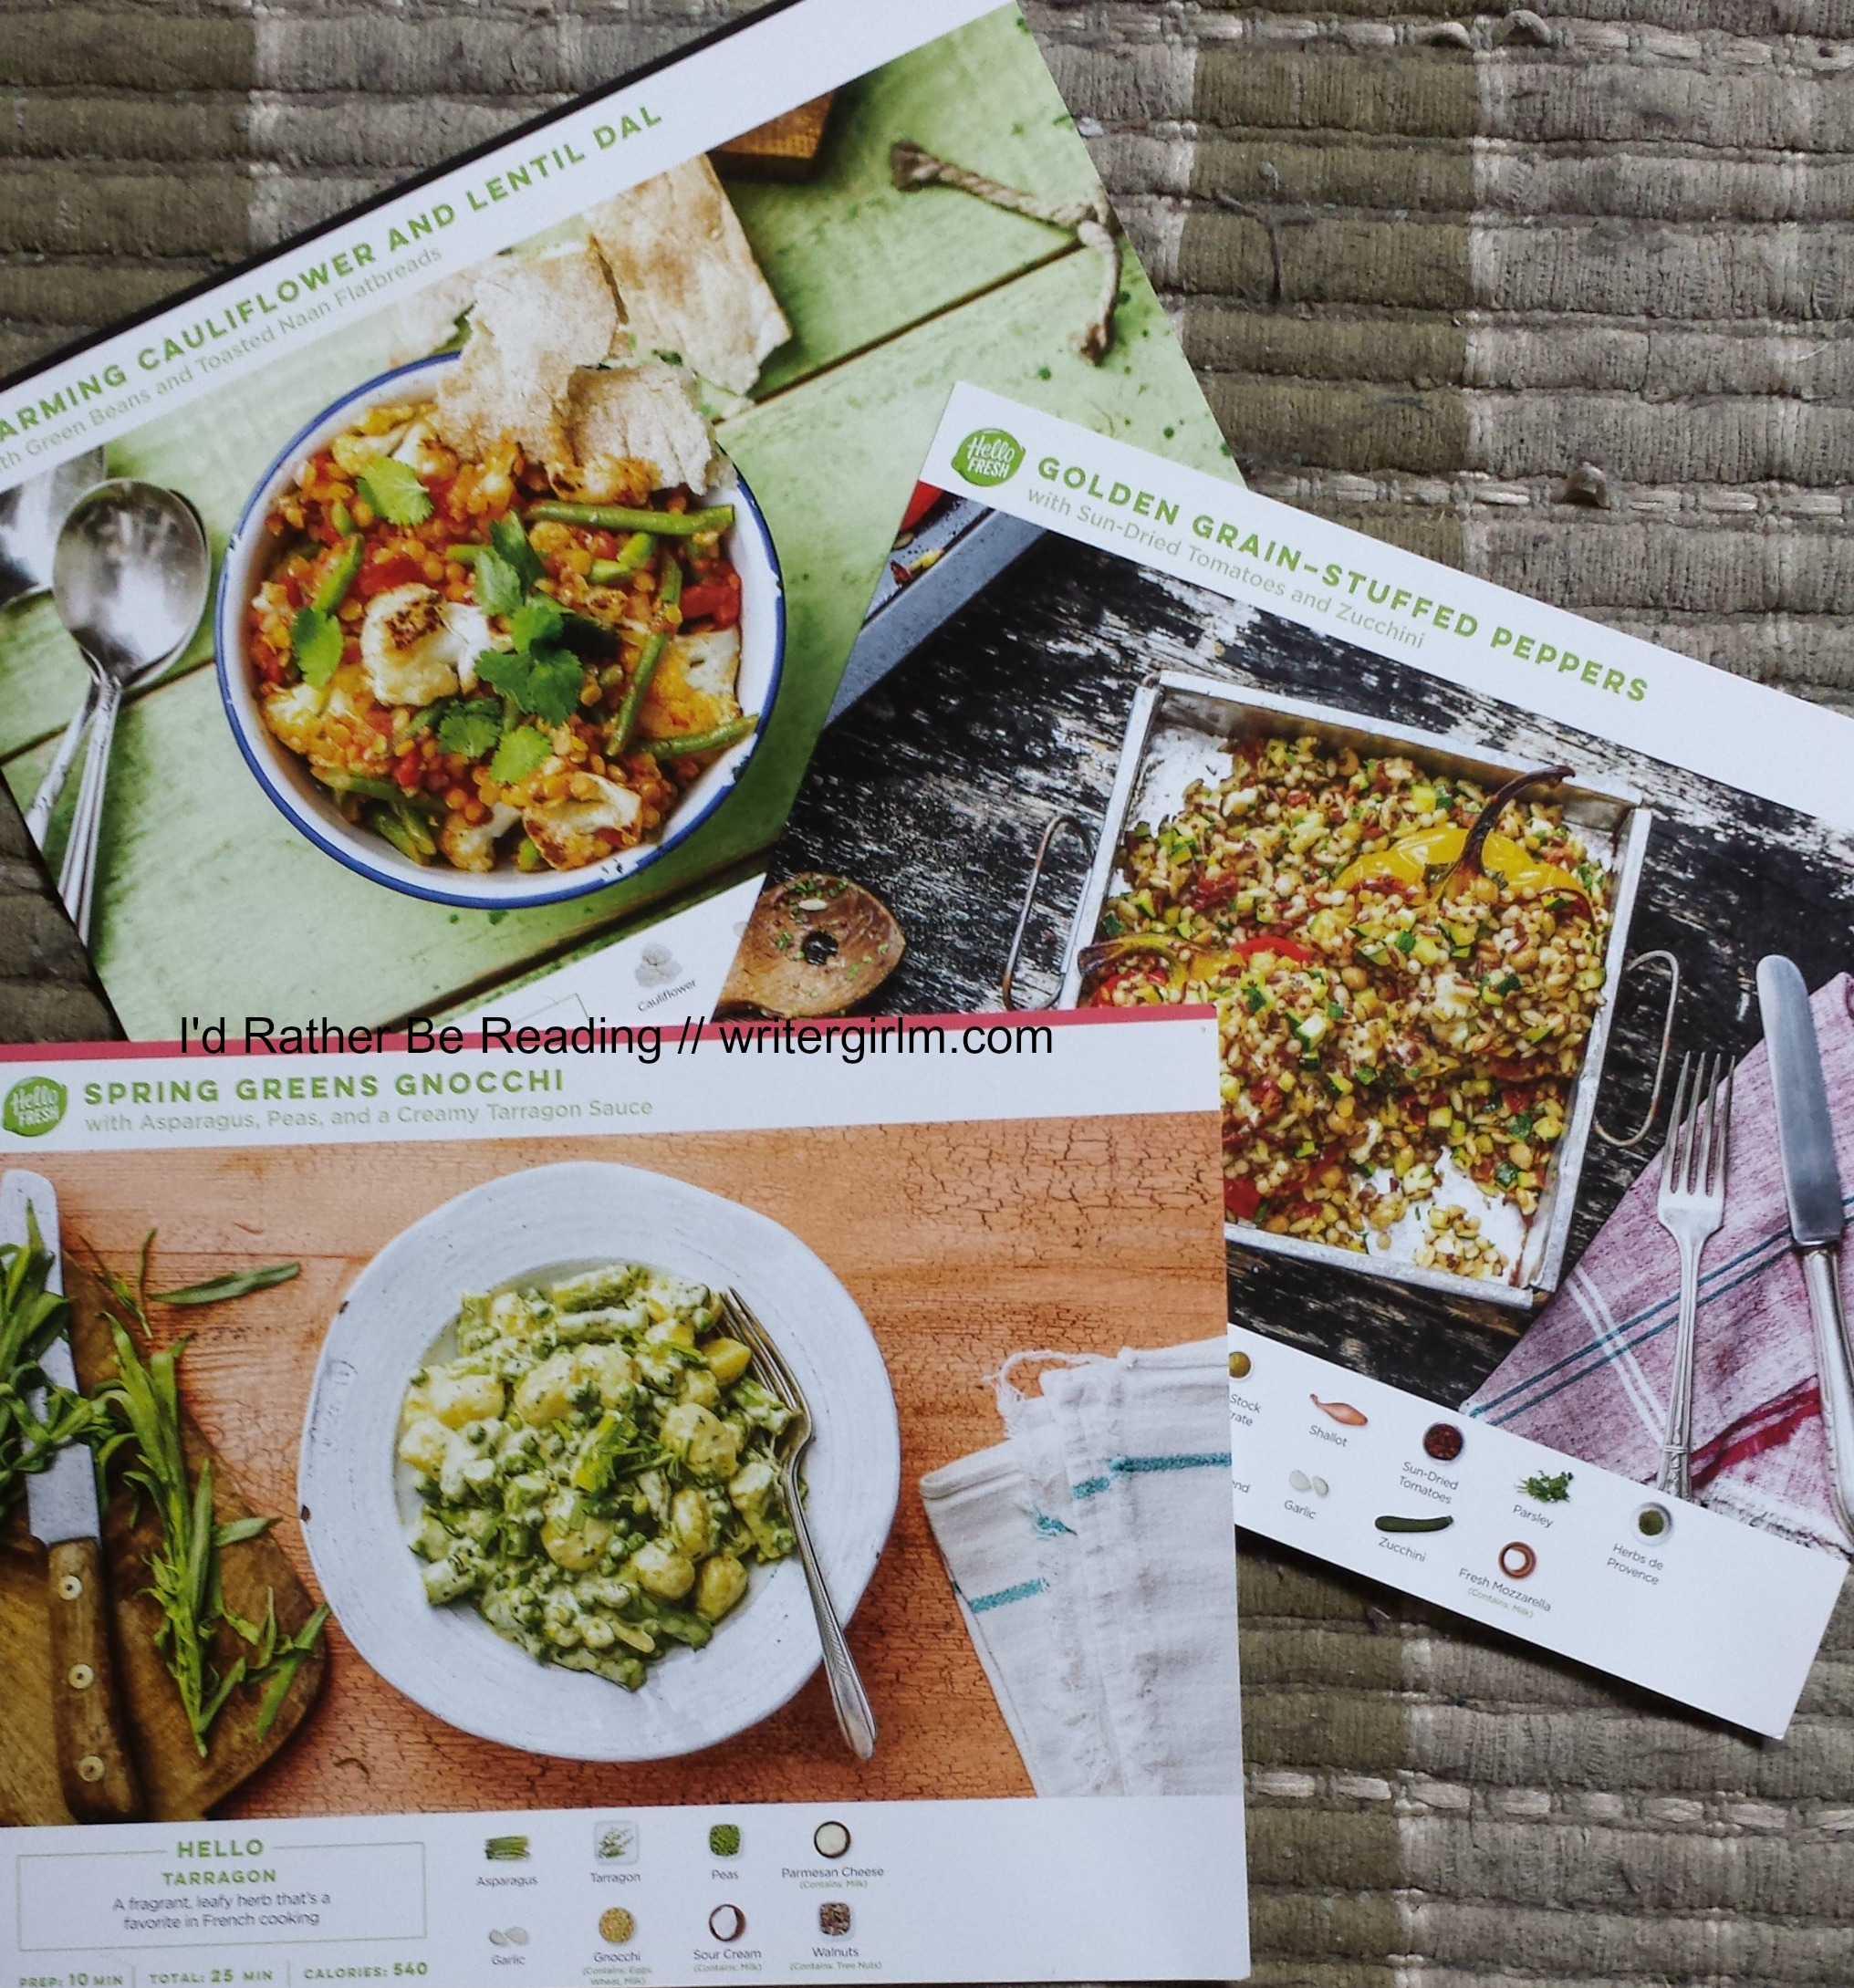 I love the additional photos and easy-to-follow recipe cards in my Hello Fresh order!